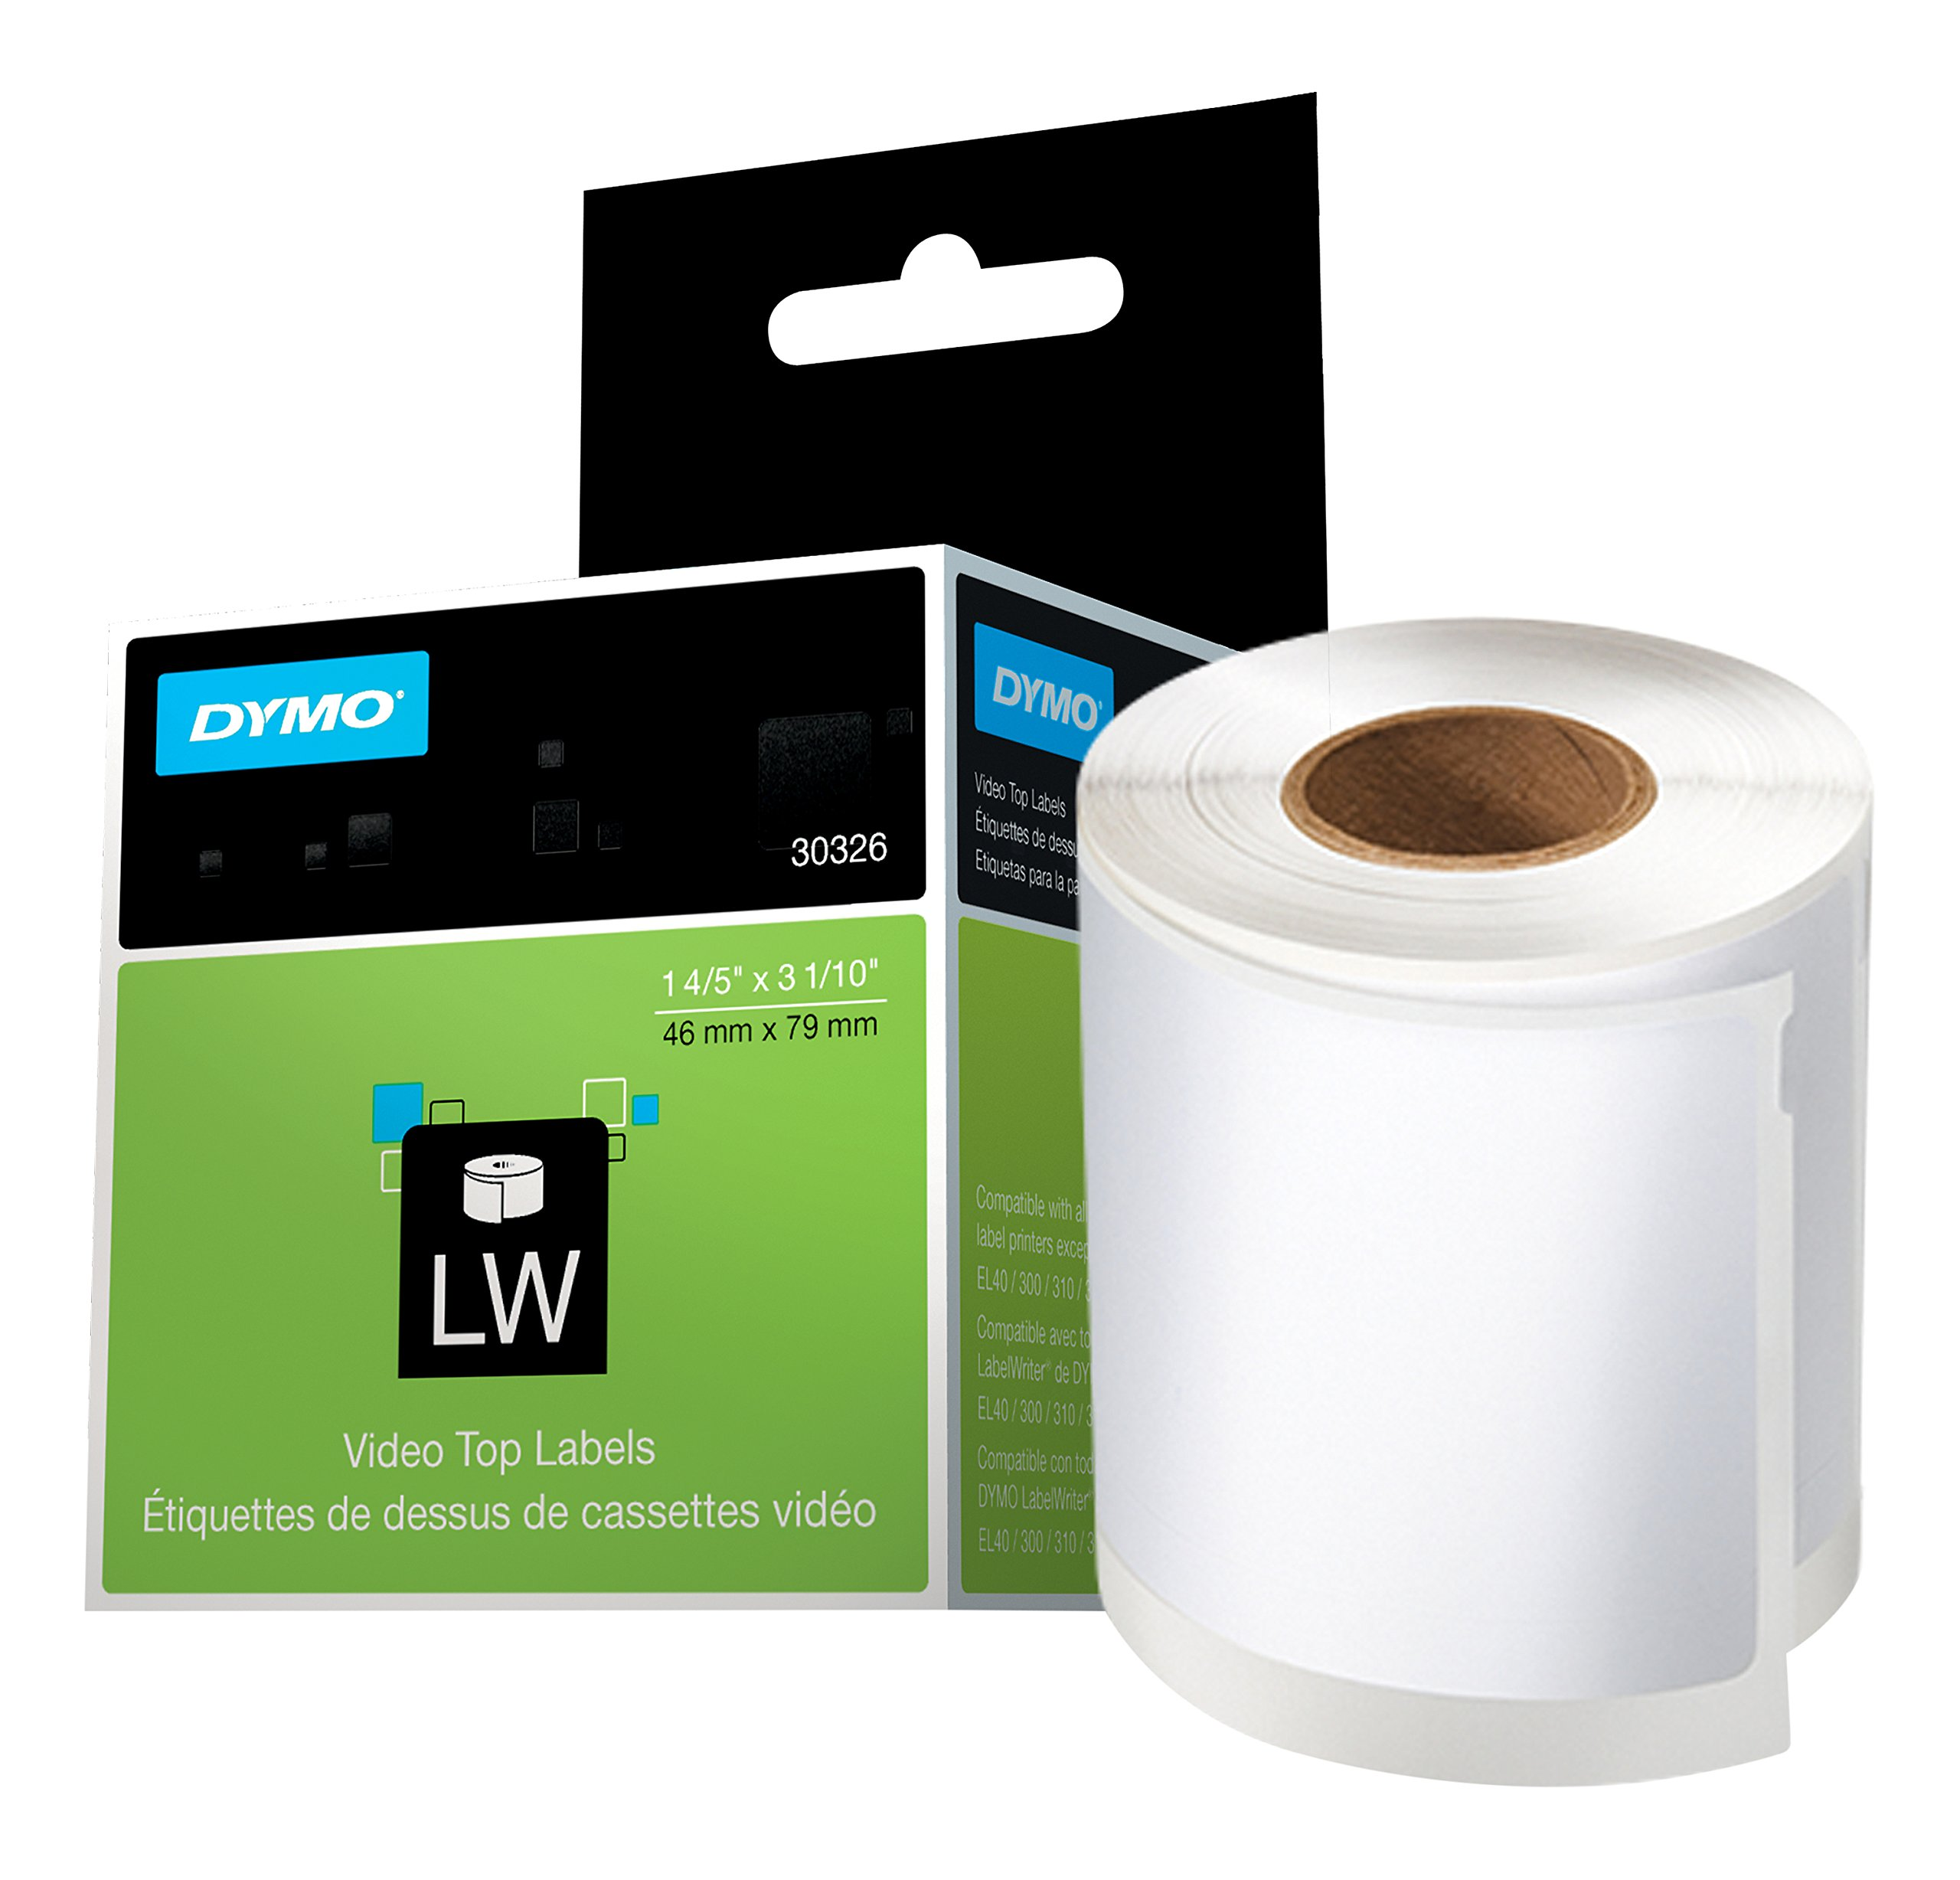 DYMO LW Video Top Labels for LabelWriter Label Printers, White, 1.8'' x 3.1'', 1 Roll of 150